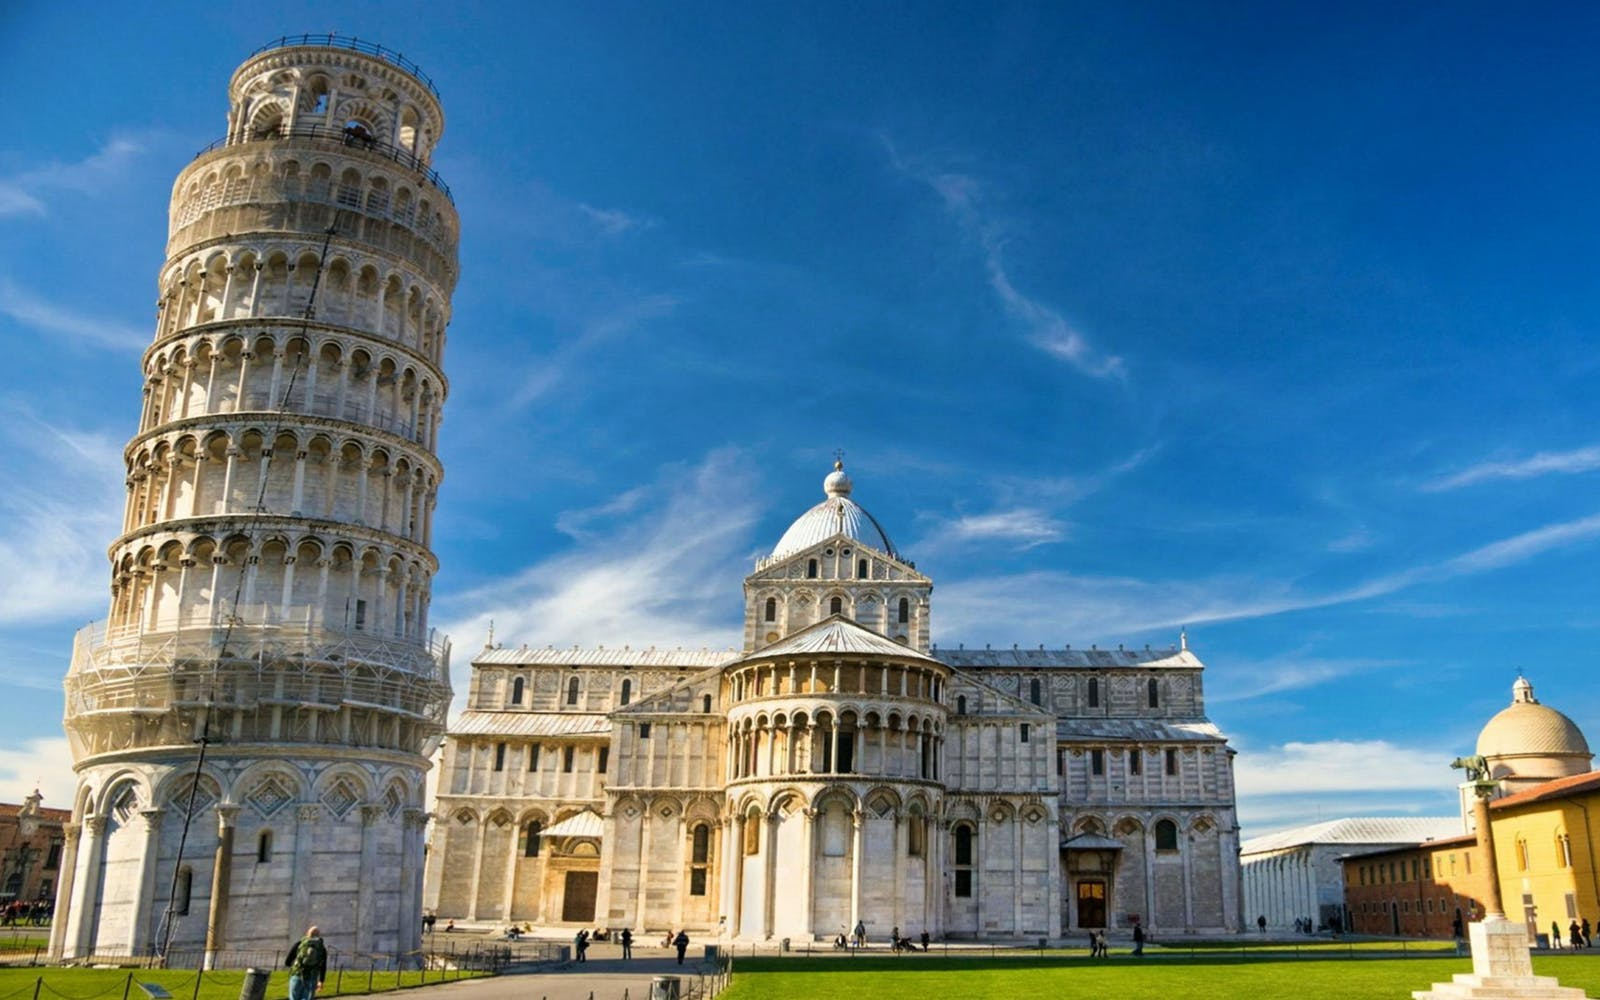 Half Day Guided Tour of Pisa Through the Tuscan Countryside